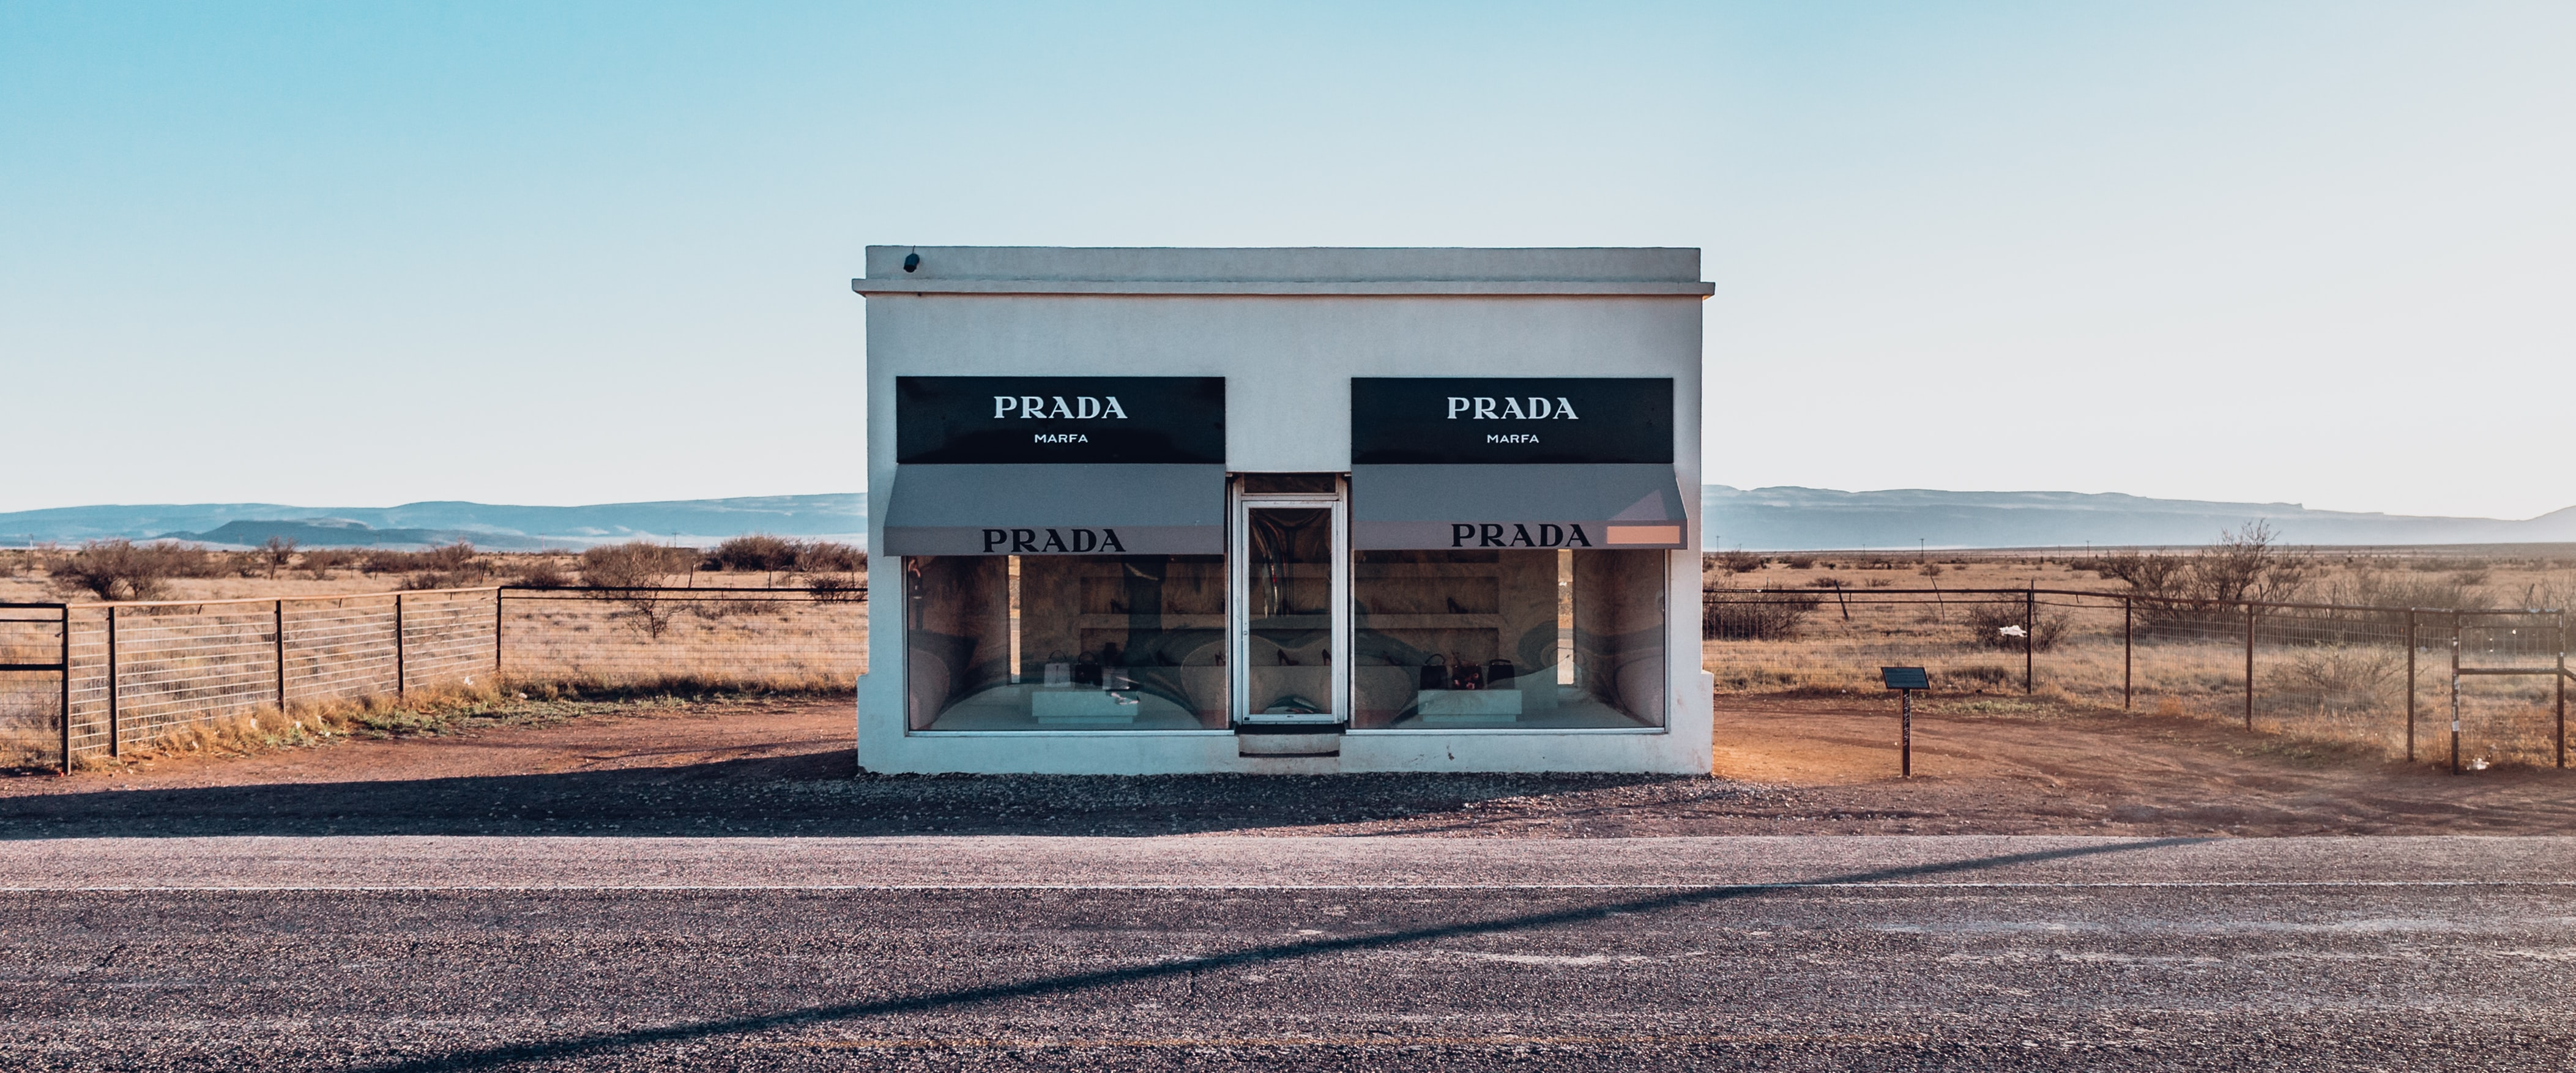 white Prada store facade beside road